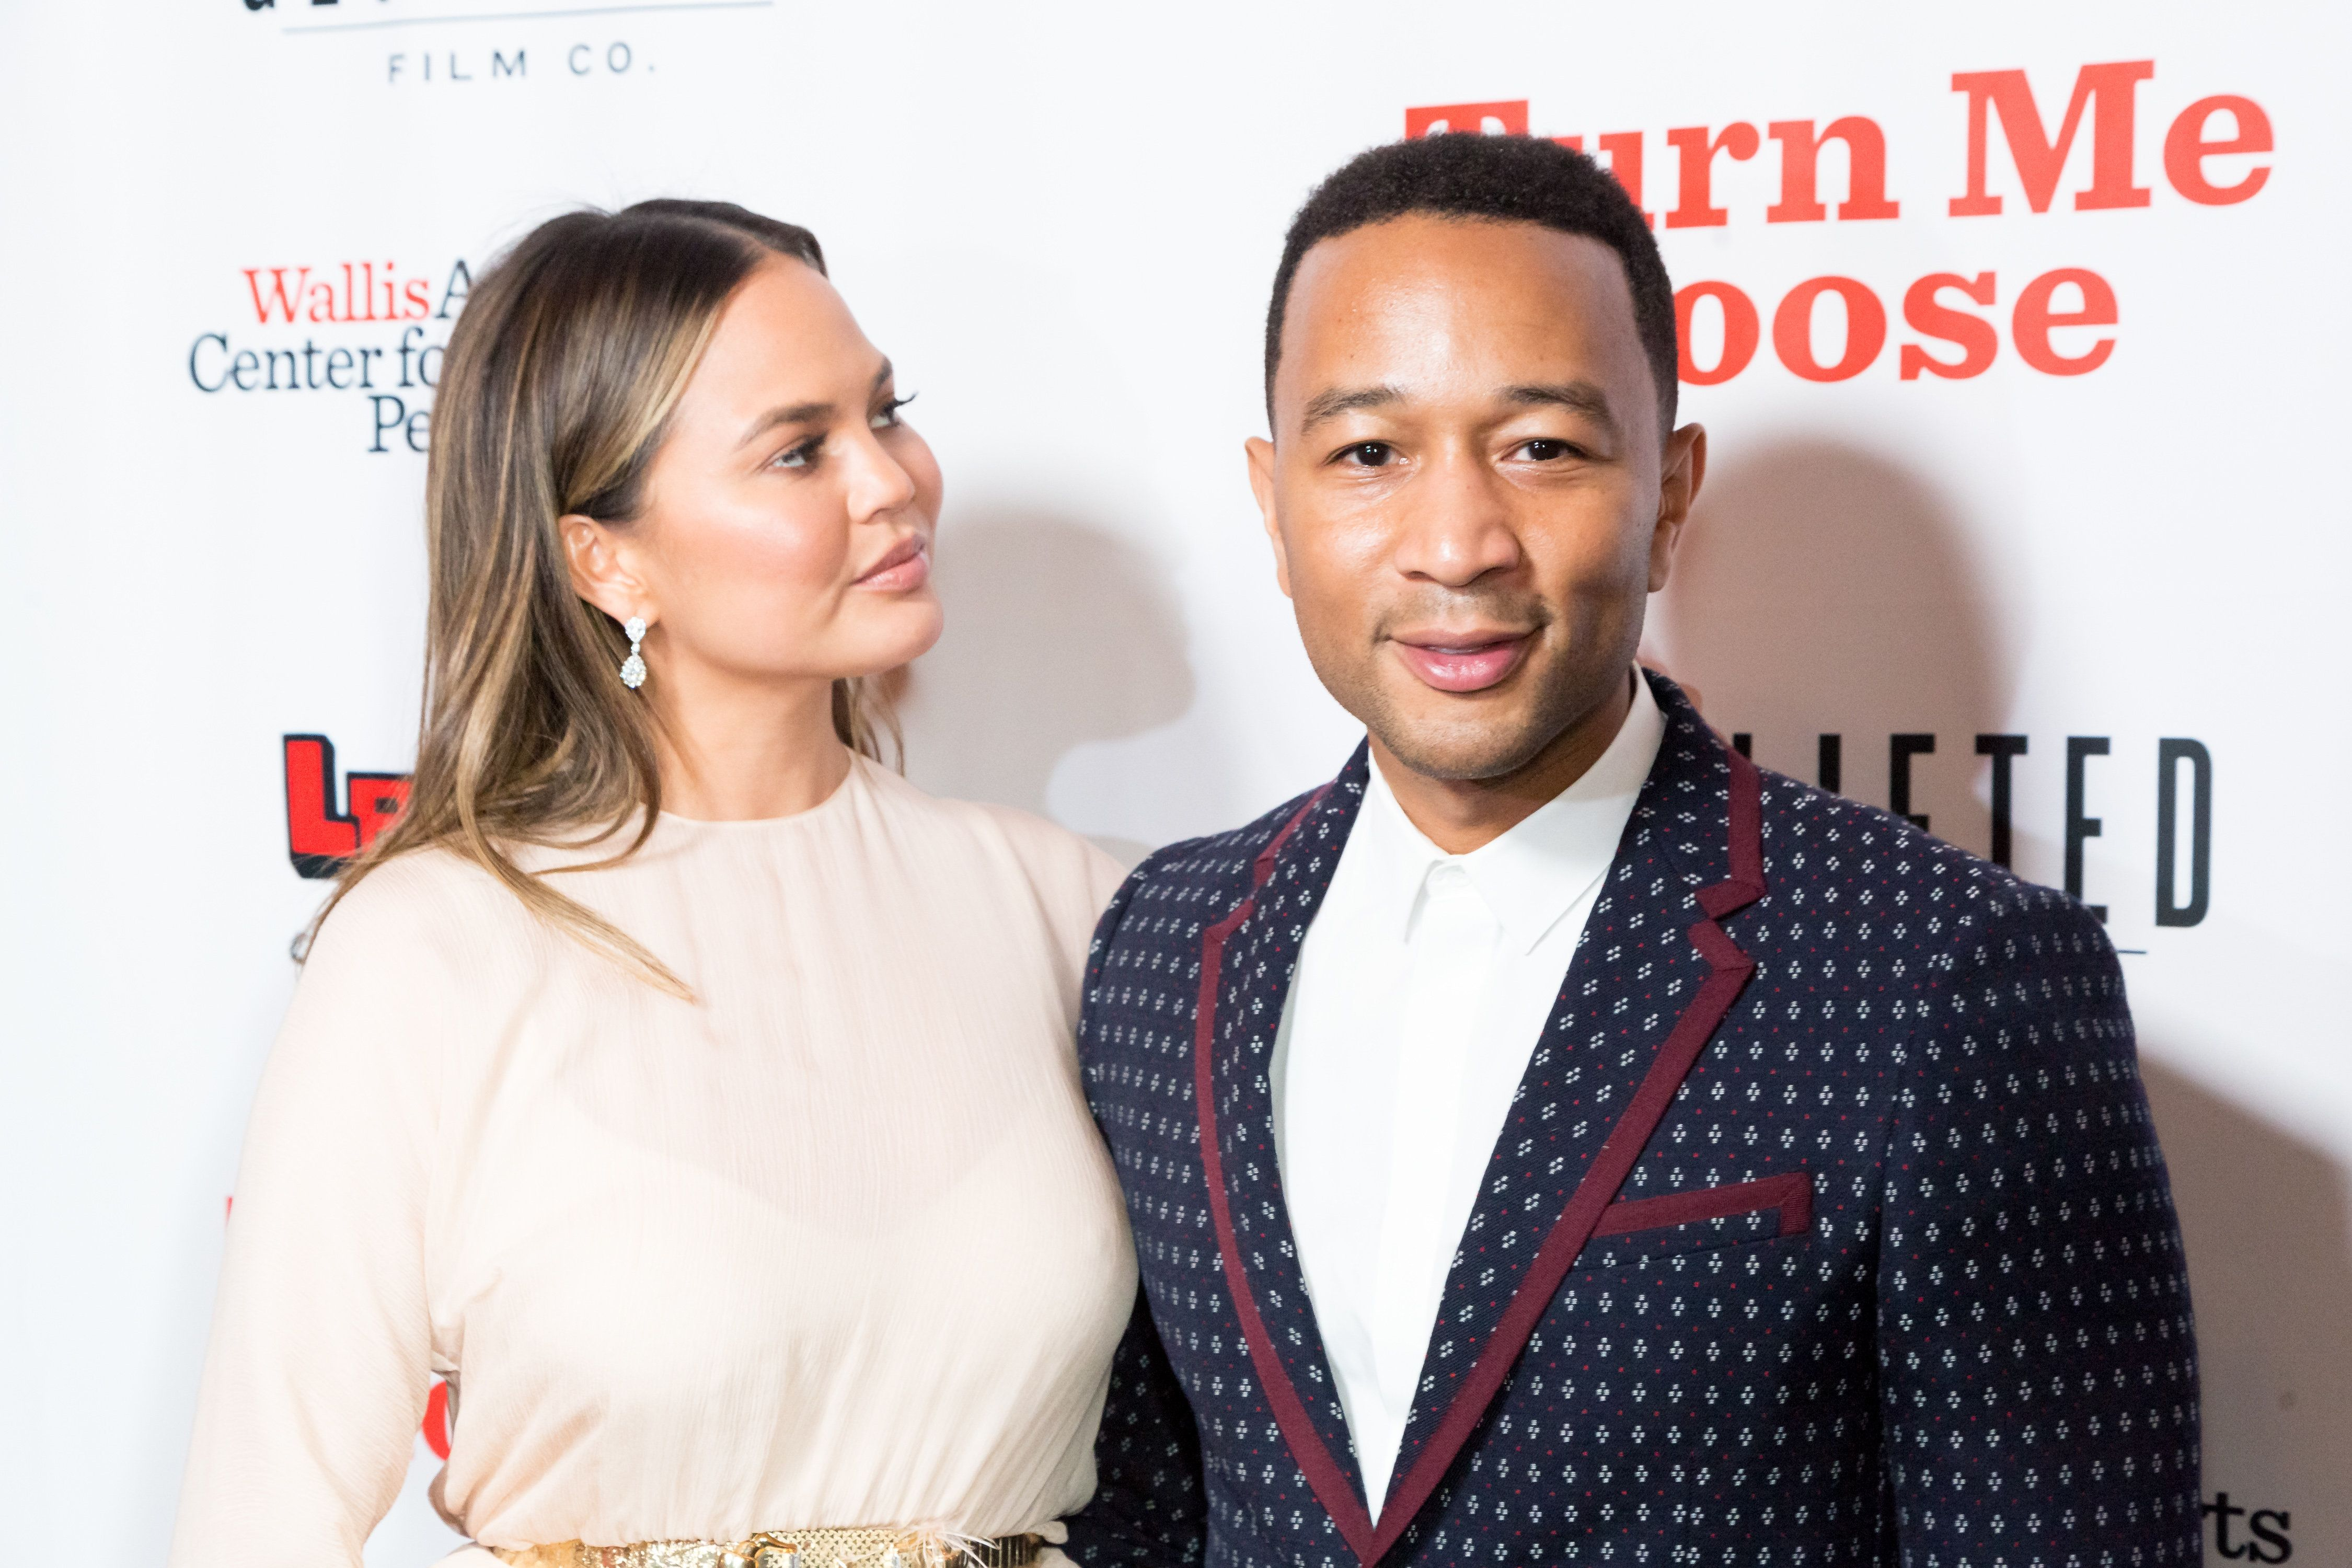 BEVERLY HILLS, CA - OCTOBER 19:  Chrissy Teigen and John Legend attend 'Turn Me Loose' at Wallis Annenberg Center for the Performing Arts on October 19, 2017 in Beverly Hills, California.  (Photo by Greg Doherty/Getty Images)